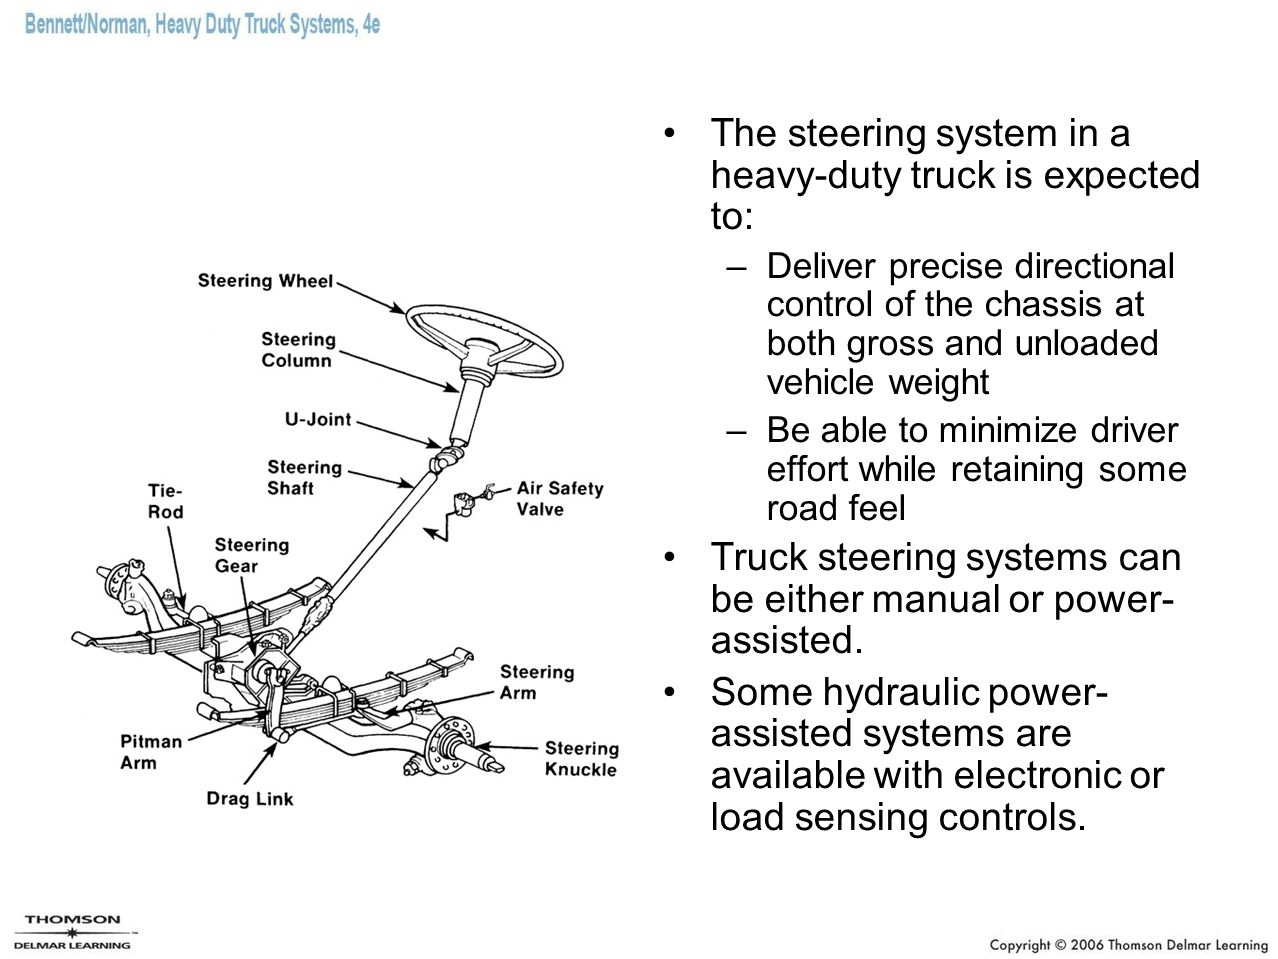 The steering system in a heavy-duty truck is expected to: